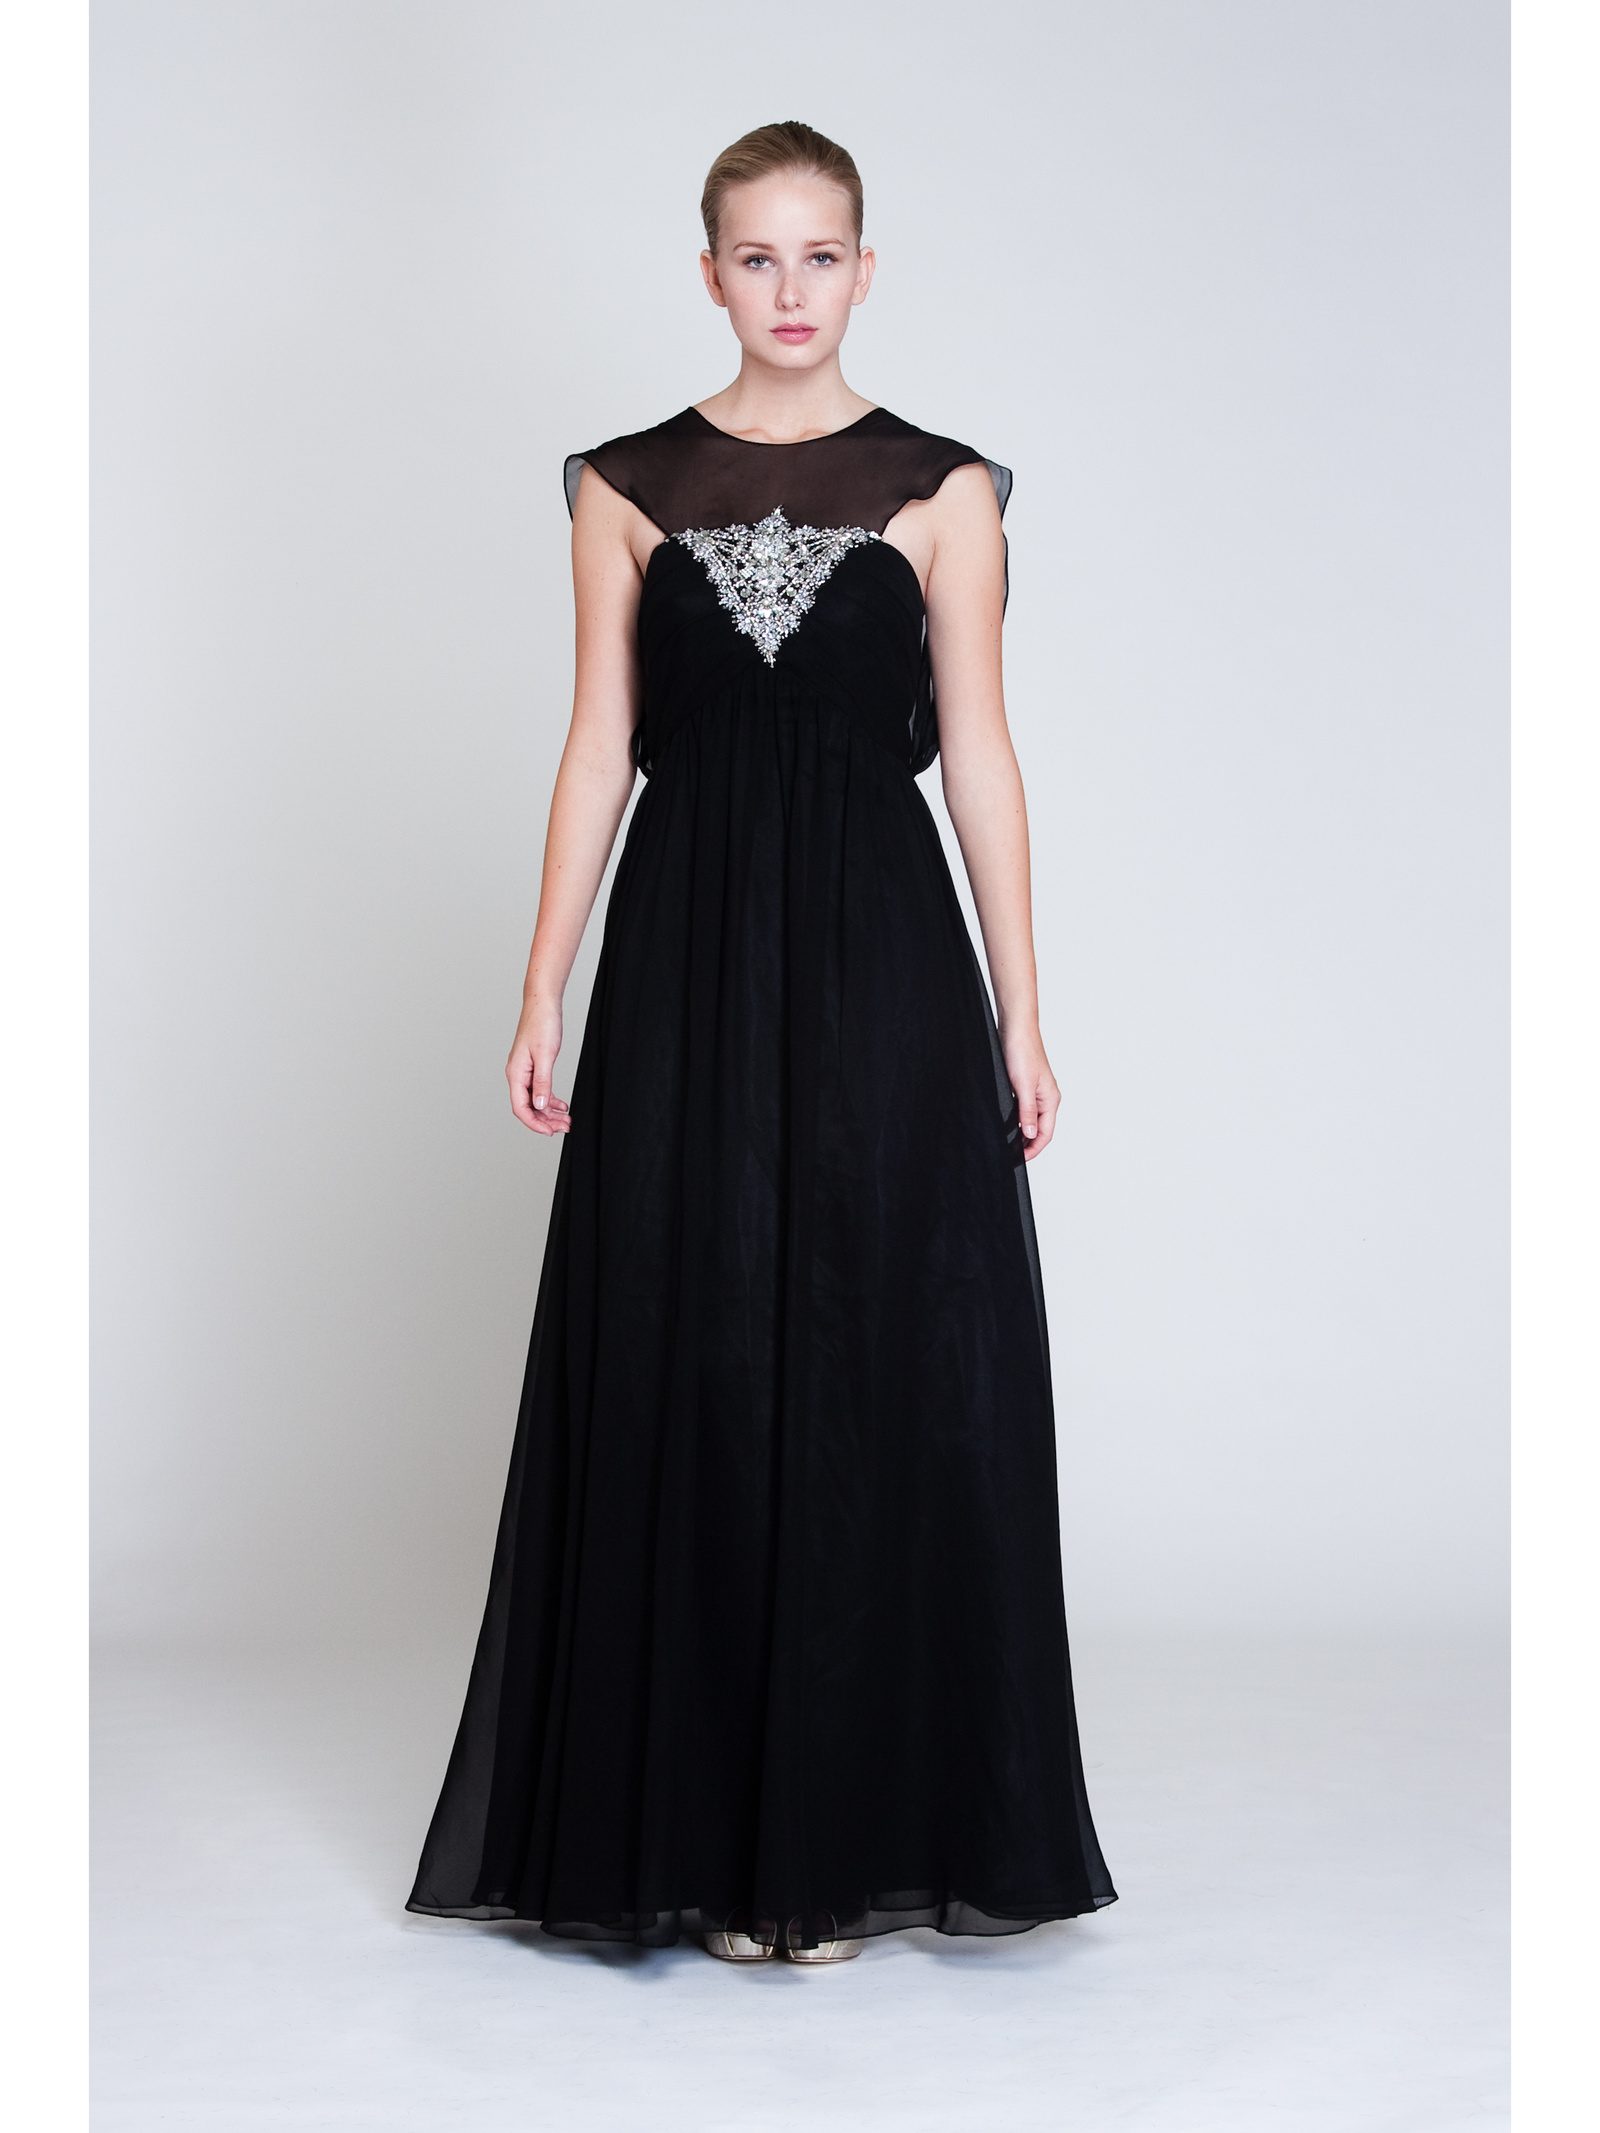 Narces Diana Gown